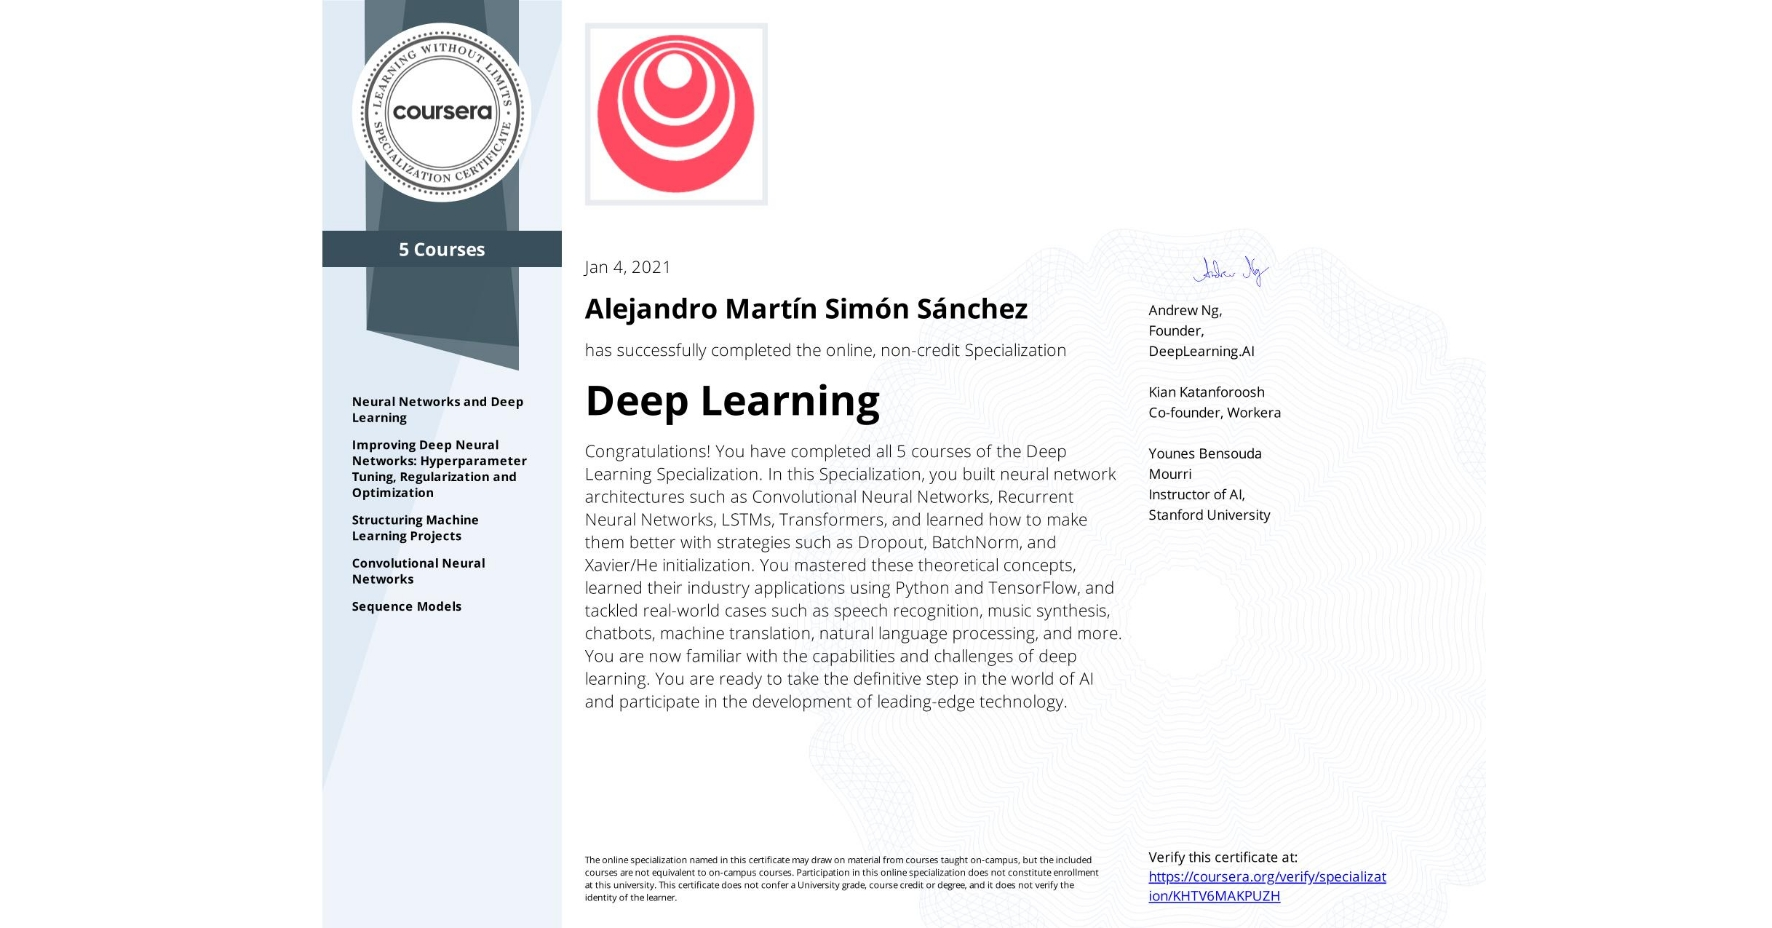 View certificate for Alejandro Martín  Simón Sánchez, Deep Learning, offered through Coursera. Congratulations! You have completed all 5 courses of the Deep Learning Specialization.  In this Specialization, you built neural network architectures such as Convolutional Neural Networks, Recurrent Neural Networks, LSTMs, Transformers, and learned how to make them better with strategies such as Dropout, BatchNorm, and Xavier/He initialization. You mastered these theoretical concepts, learned their industry applications using Python and TensorFlow, and tackled real-world cases such as speech recognition, music synthesis, chatbots, machine translation, natural language processing, and more.  You are now familiar with the capabilities and challenges of deep learning. You are ready to take the definitive step in the world of AI and participate in the development of leading-edge technology.